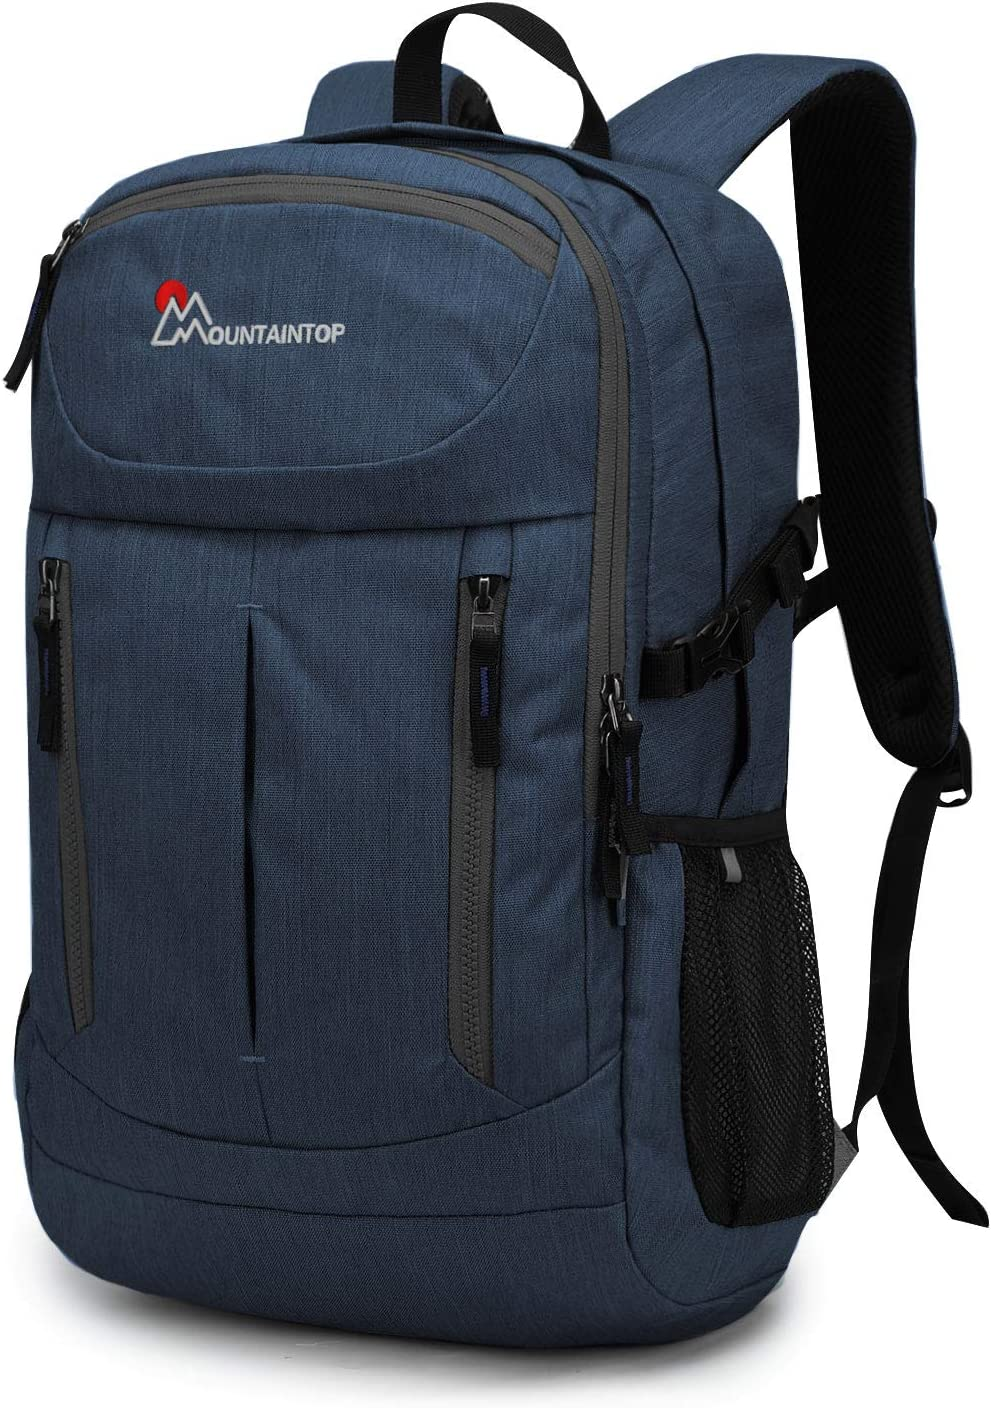 MOUNTAINTOP 28L Casual Daypack Travel Hiking Backpack